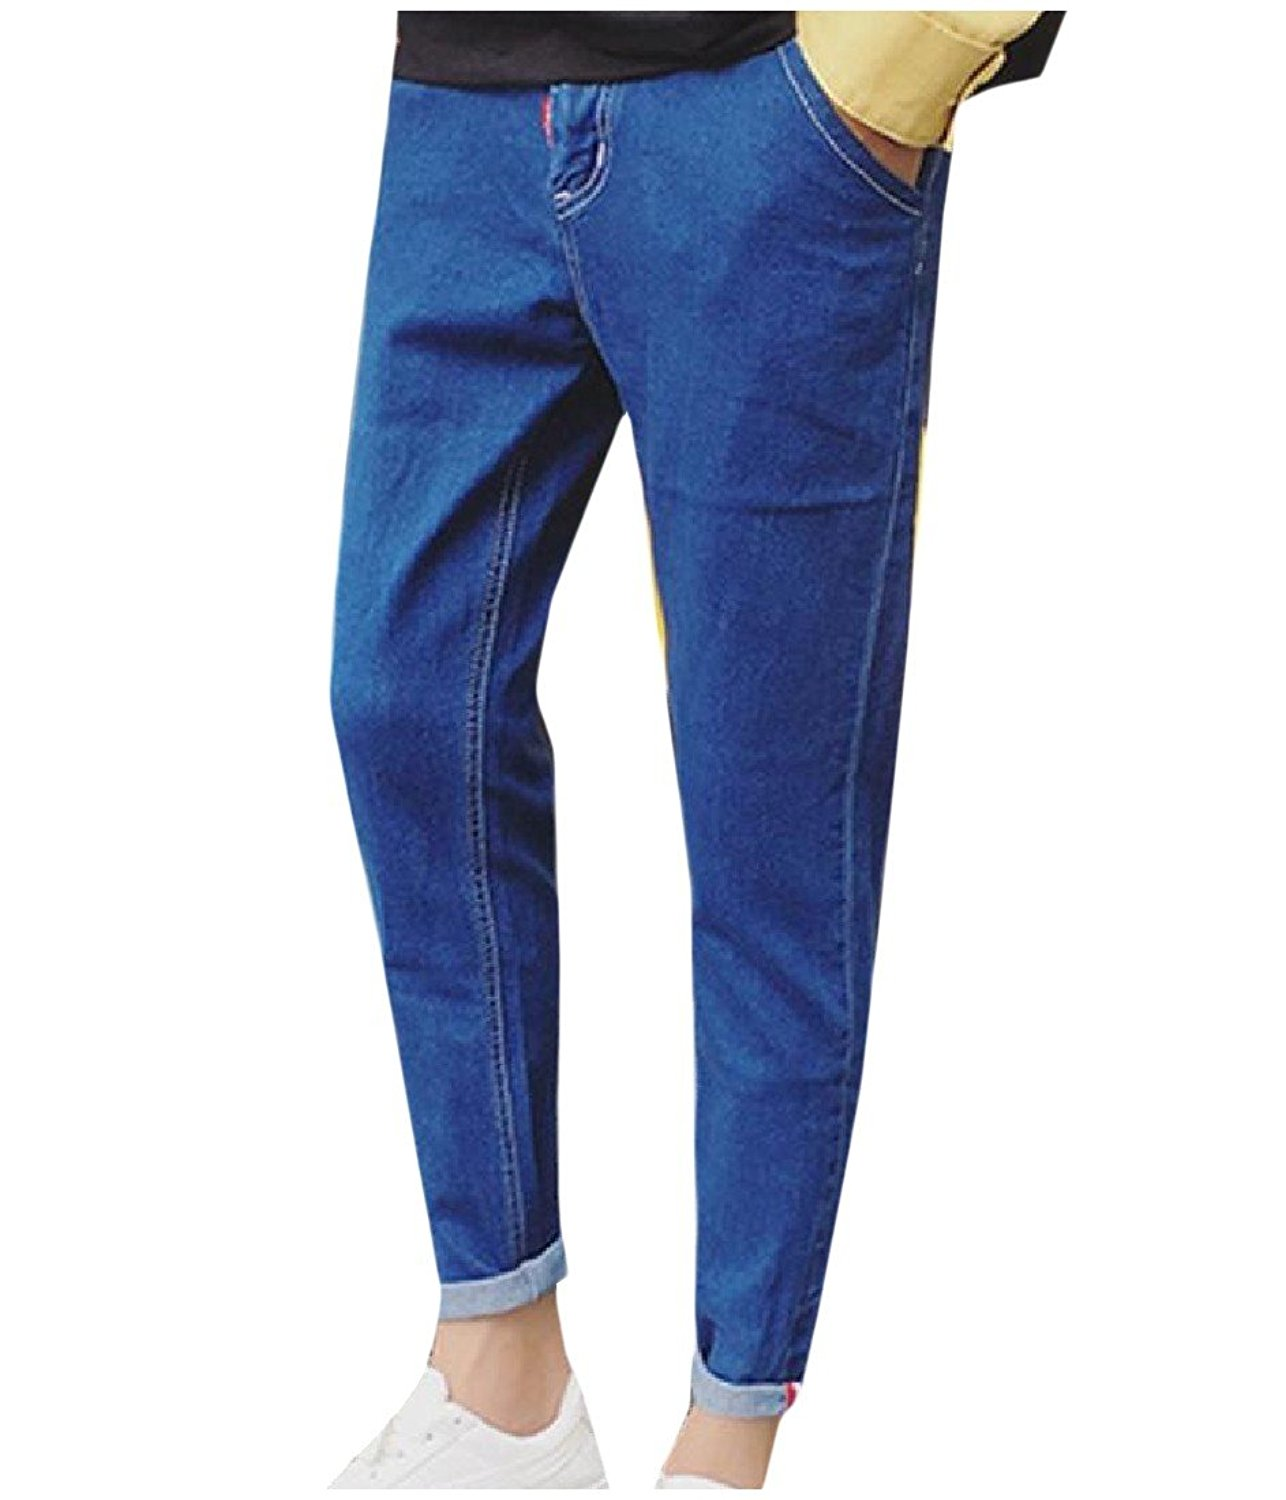 Coolred-Men Classic Solid-Colored Button-up Tapered Skinny-Fit Jean